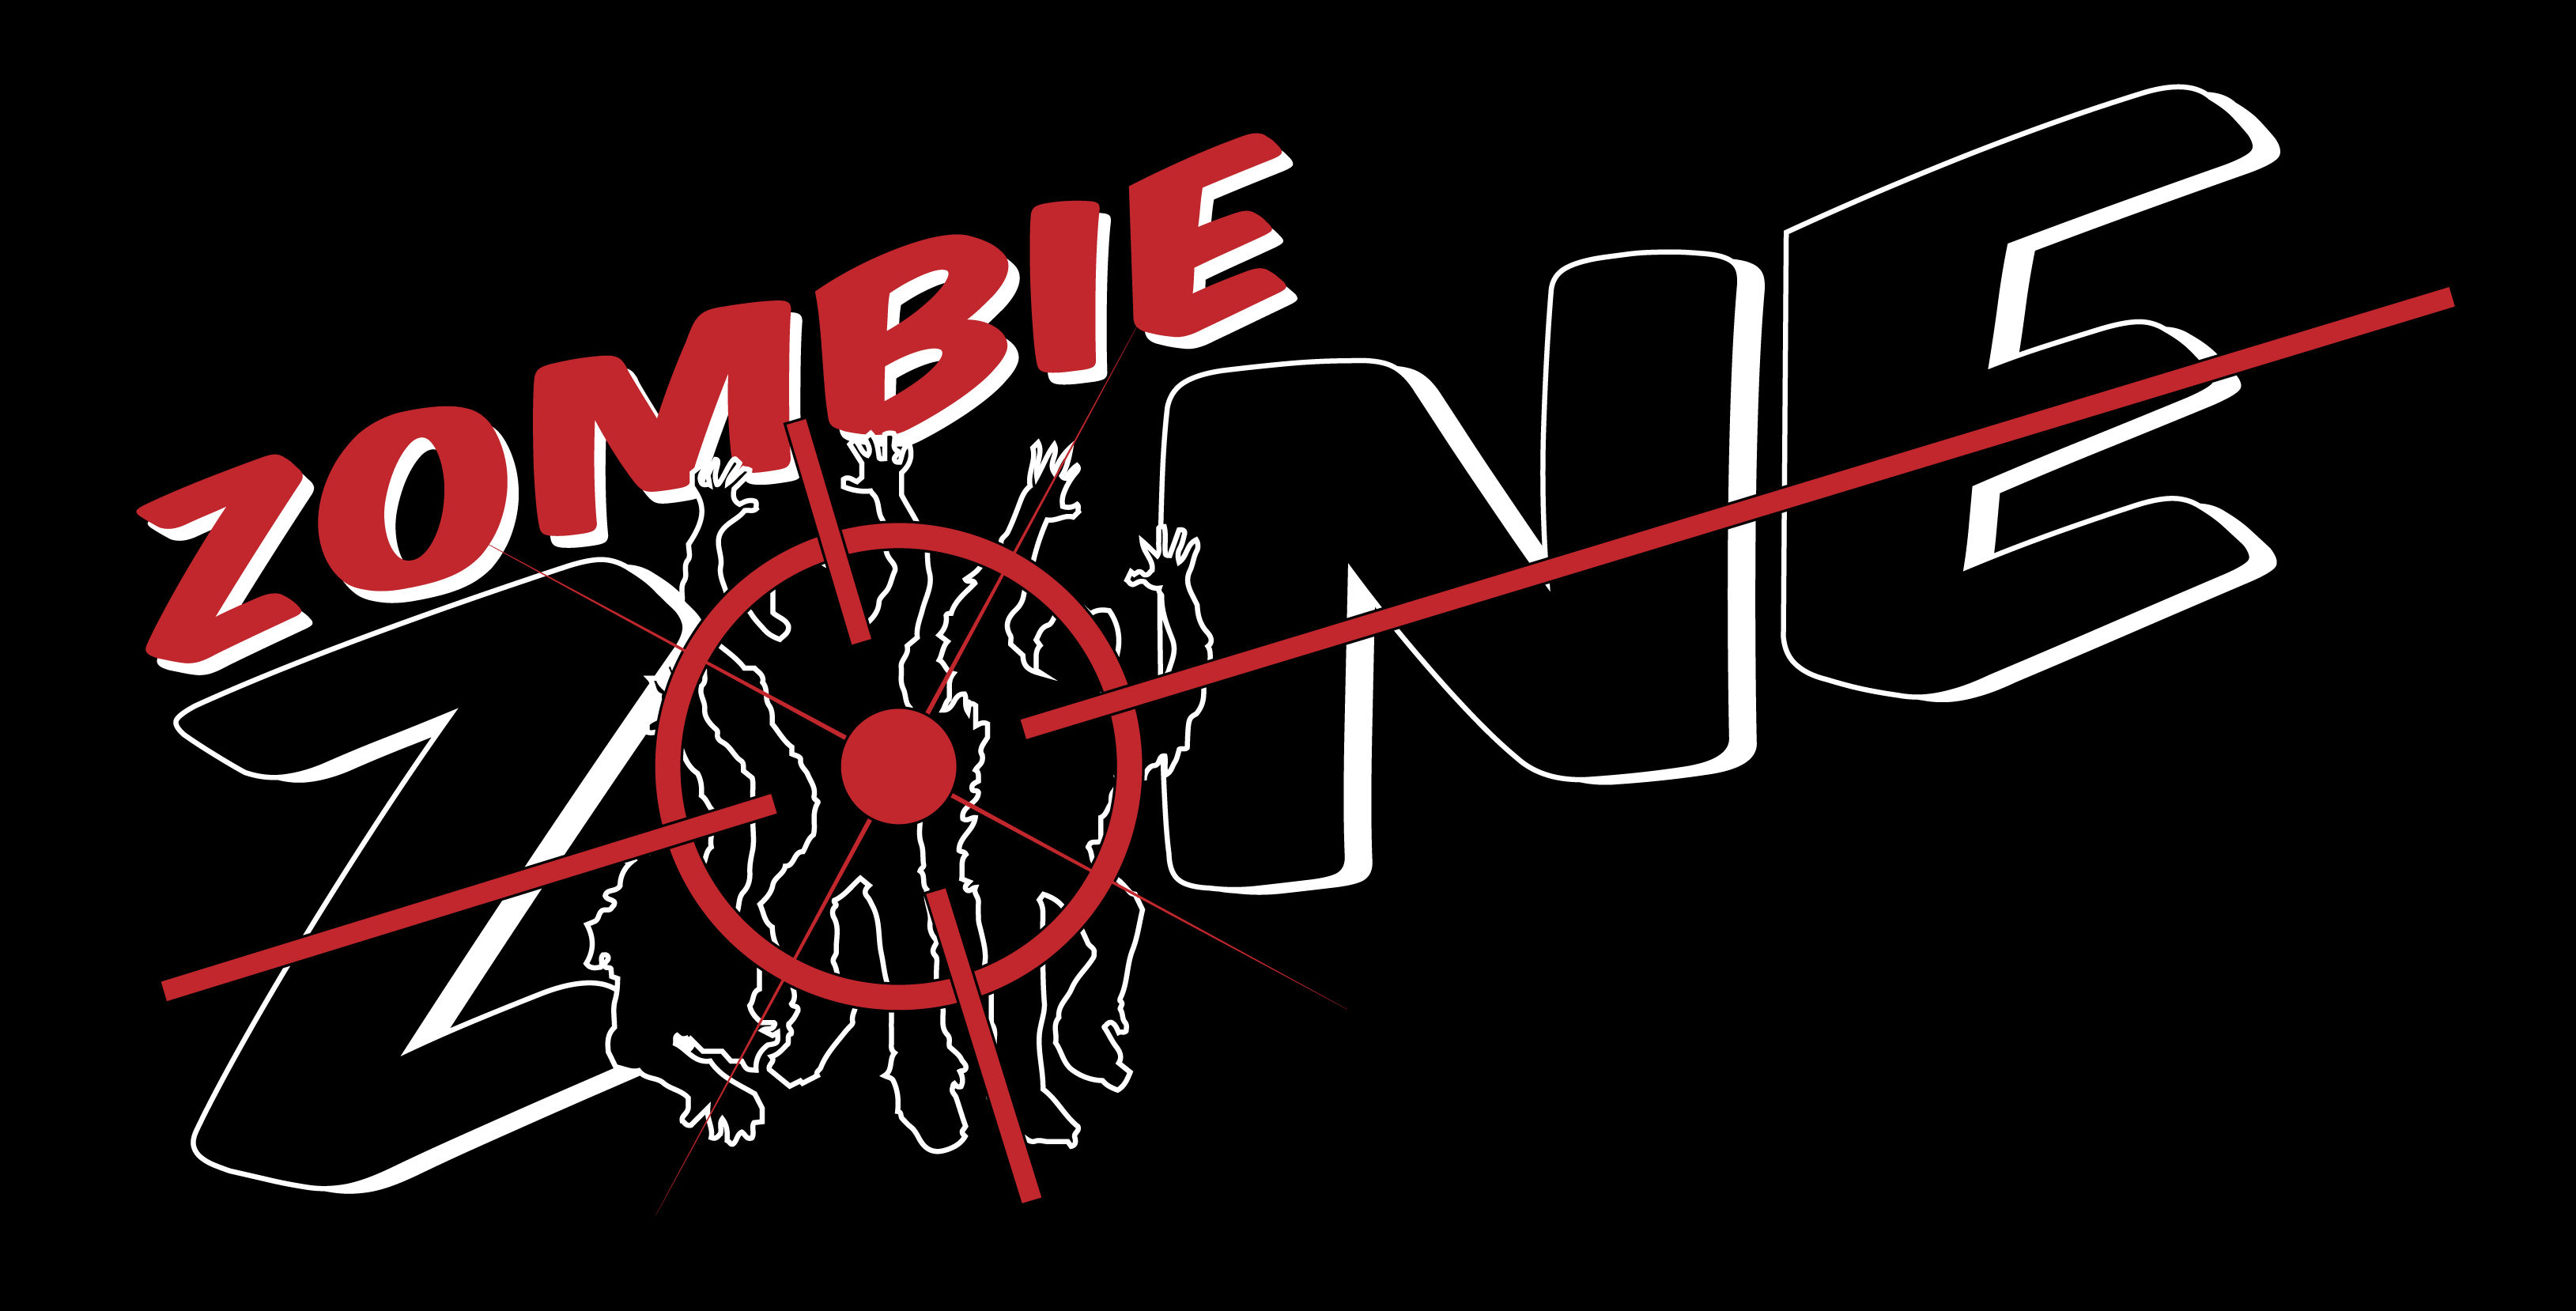 Zombie_Zone_Black_BG-01